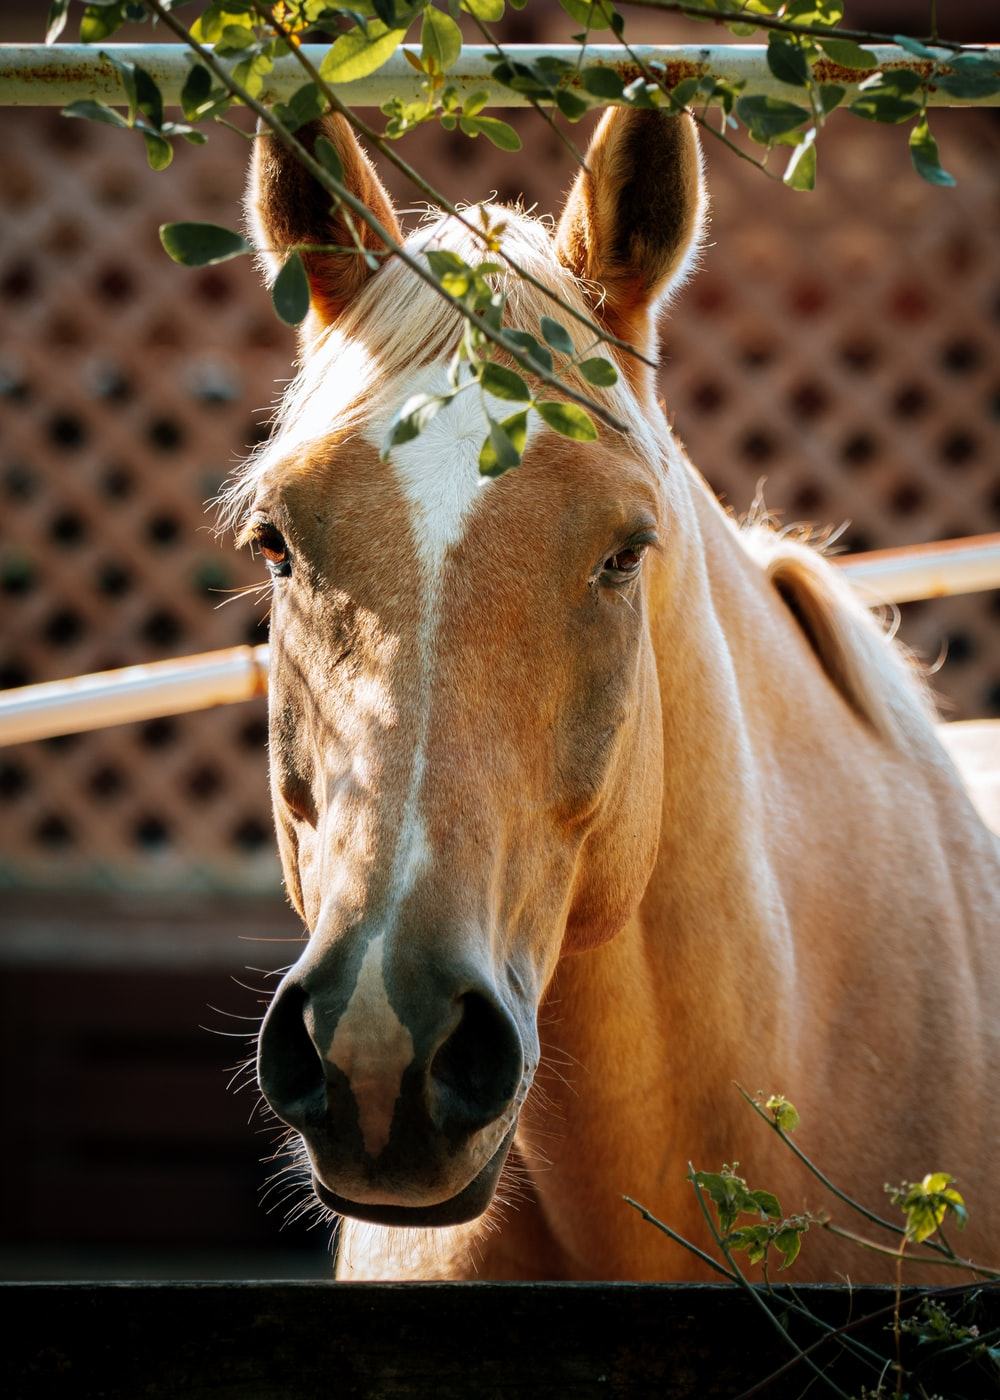 brown horse in closeup photography